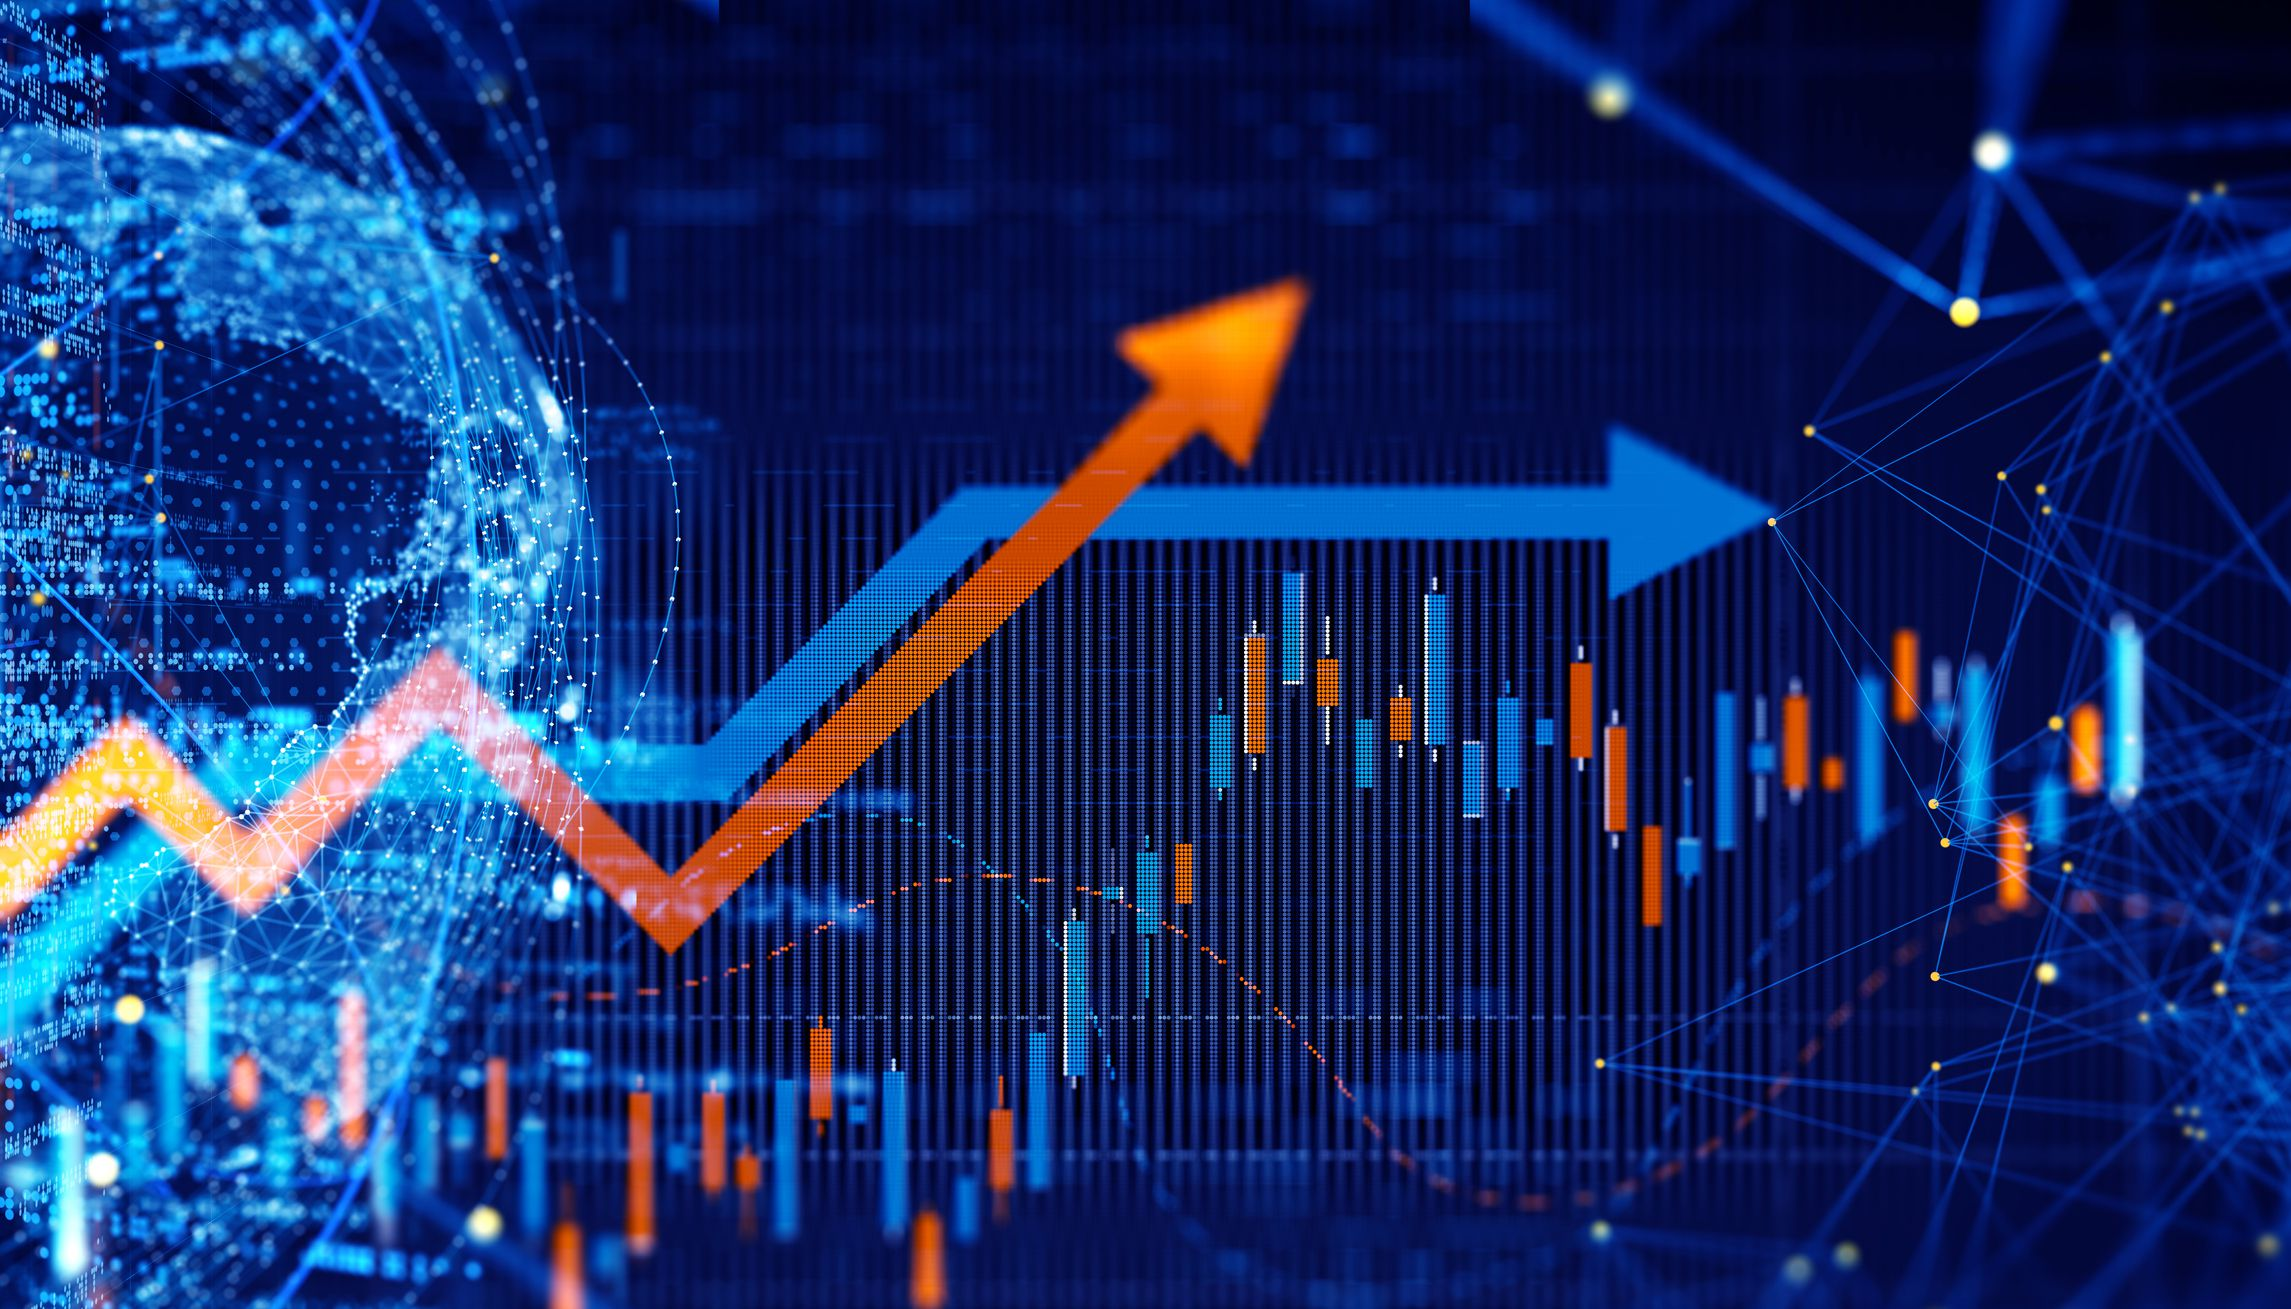 What Do Index Futures Contracts Represent